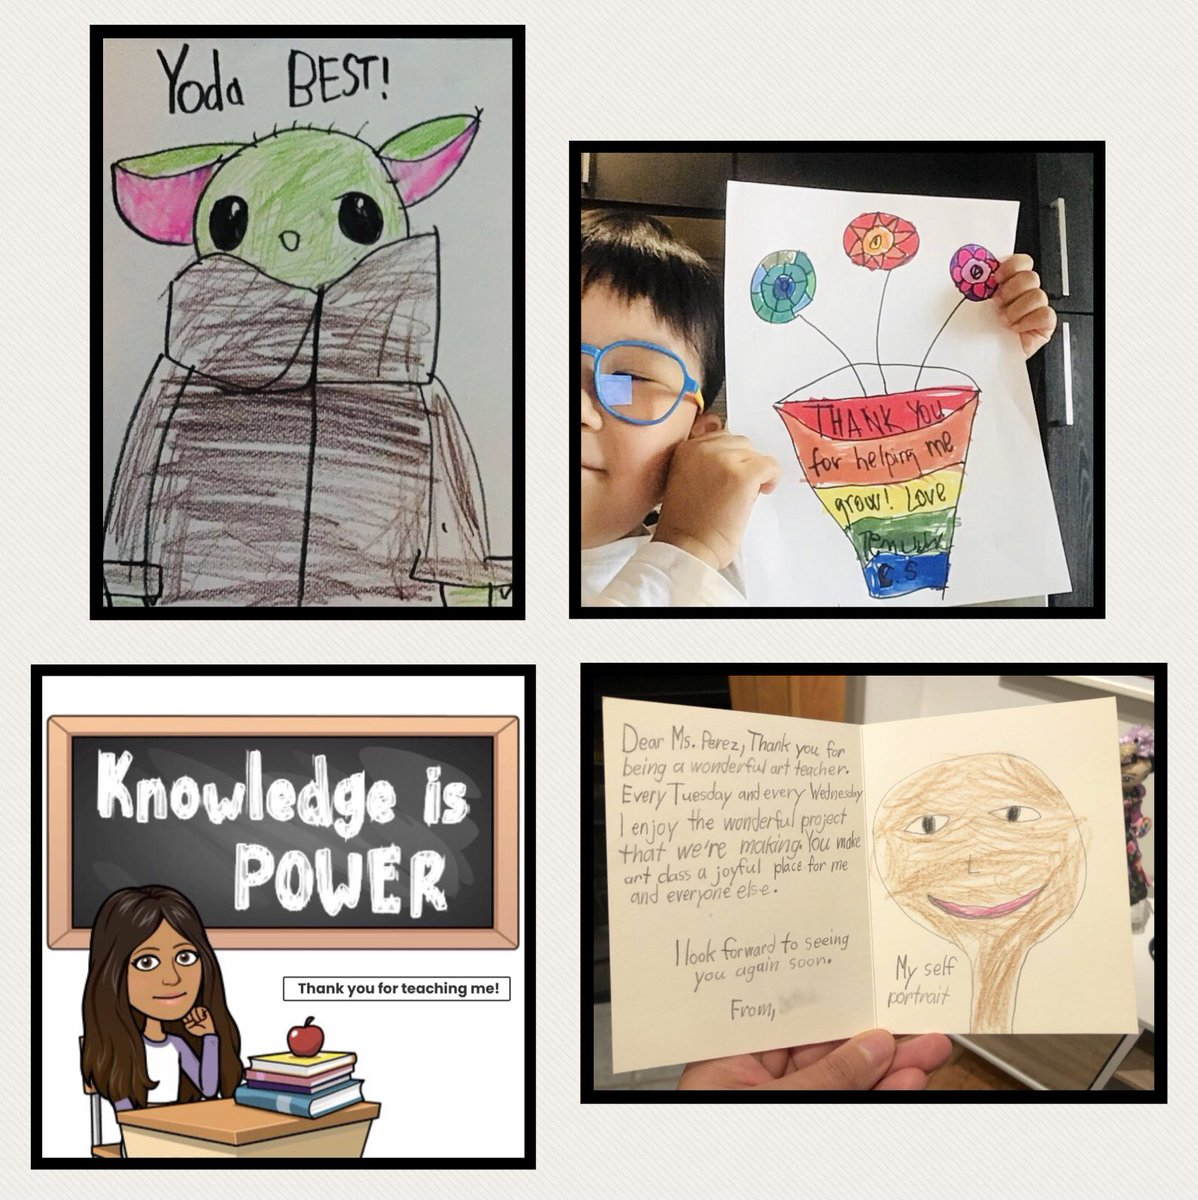 This week has been filled with beautiful surprises and tokens of appreciation. I'm honor to work with these beautiful, inspiring & kind humans. Happy Teacher Appreciation Week! <a target='_blank' href='http://twitter.com/APS_ATS'>@APS_ATS</a> <a target='_blank' href='http://twitter.com/APSArts'>@APSArts</a> <a target='_blank' href='http://twitter.com/ats_pta'>@ats_pta</a> <a target='_blank' href='http://search.twitter.com/search?q=APSartsthrive'><a target='_blank' href='https://twitter.com/hashtag/APSartsthrive?src=hash'>#APSartsthrive</a></a> <a target='_blank' href='https://t.co/9K2yRKKZlg'>https://t.co/9K2yRKKZlg</a>